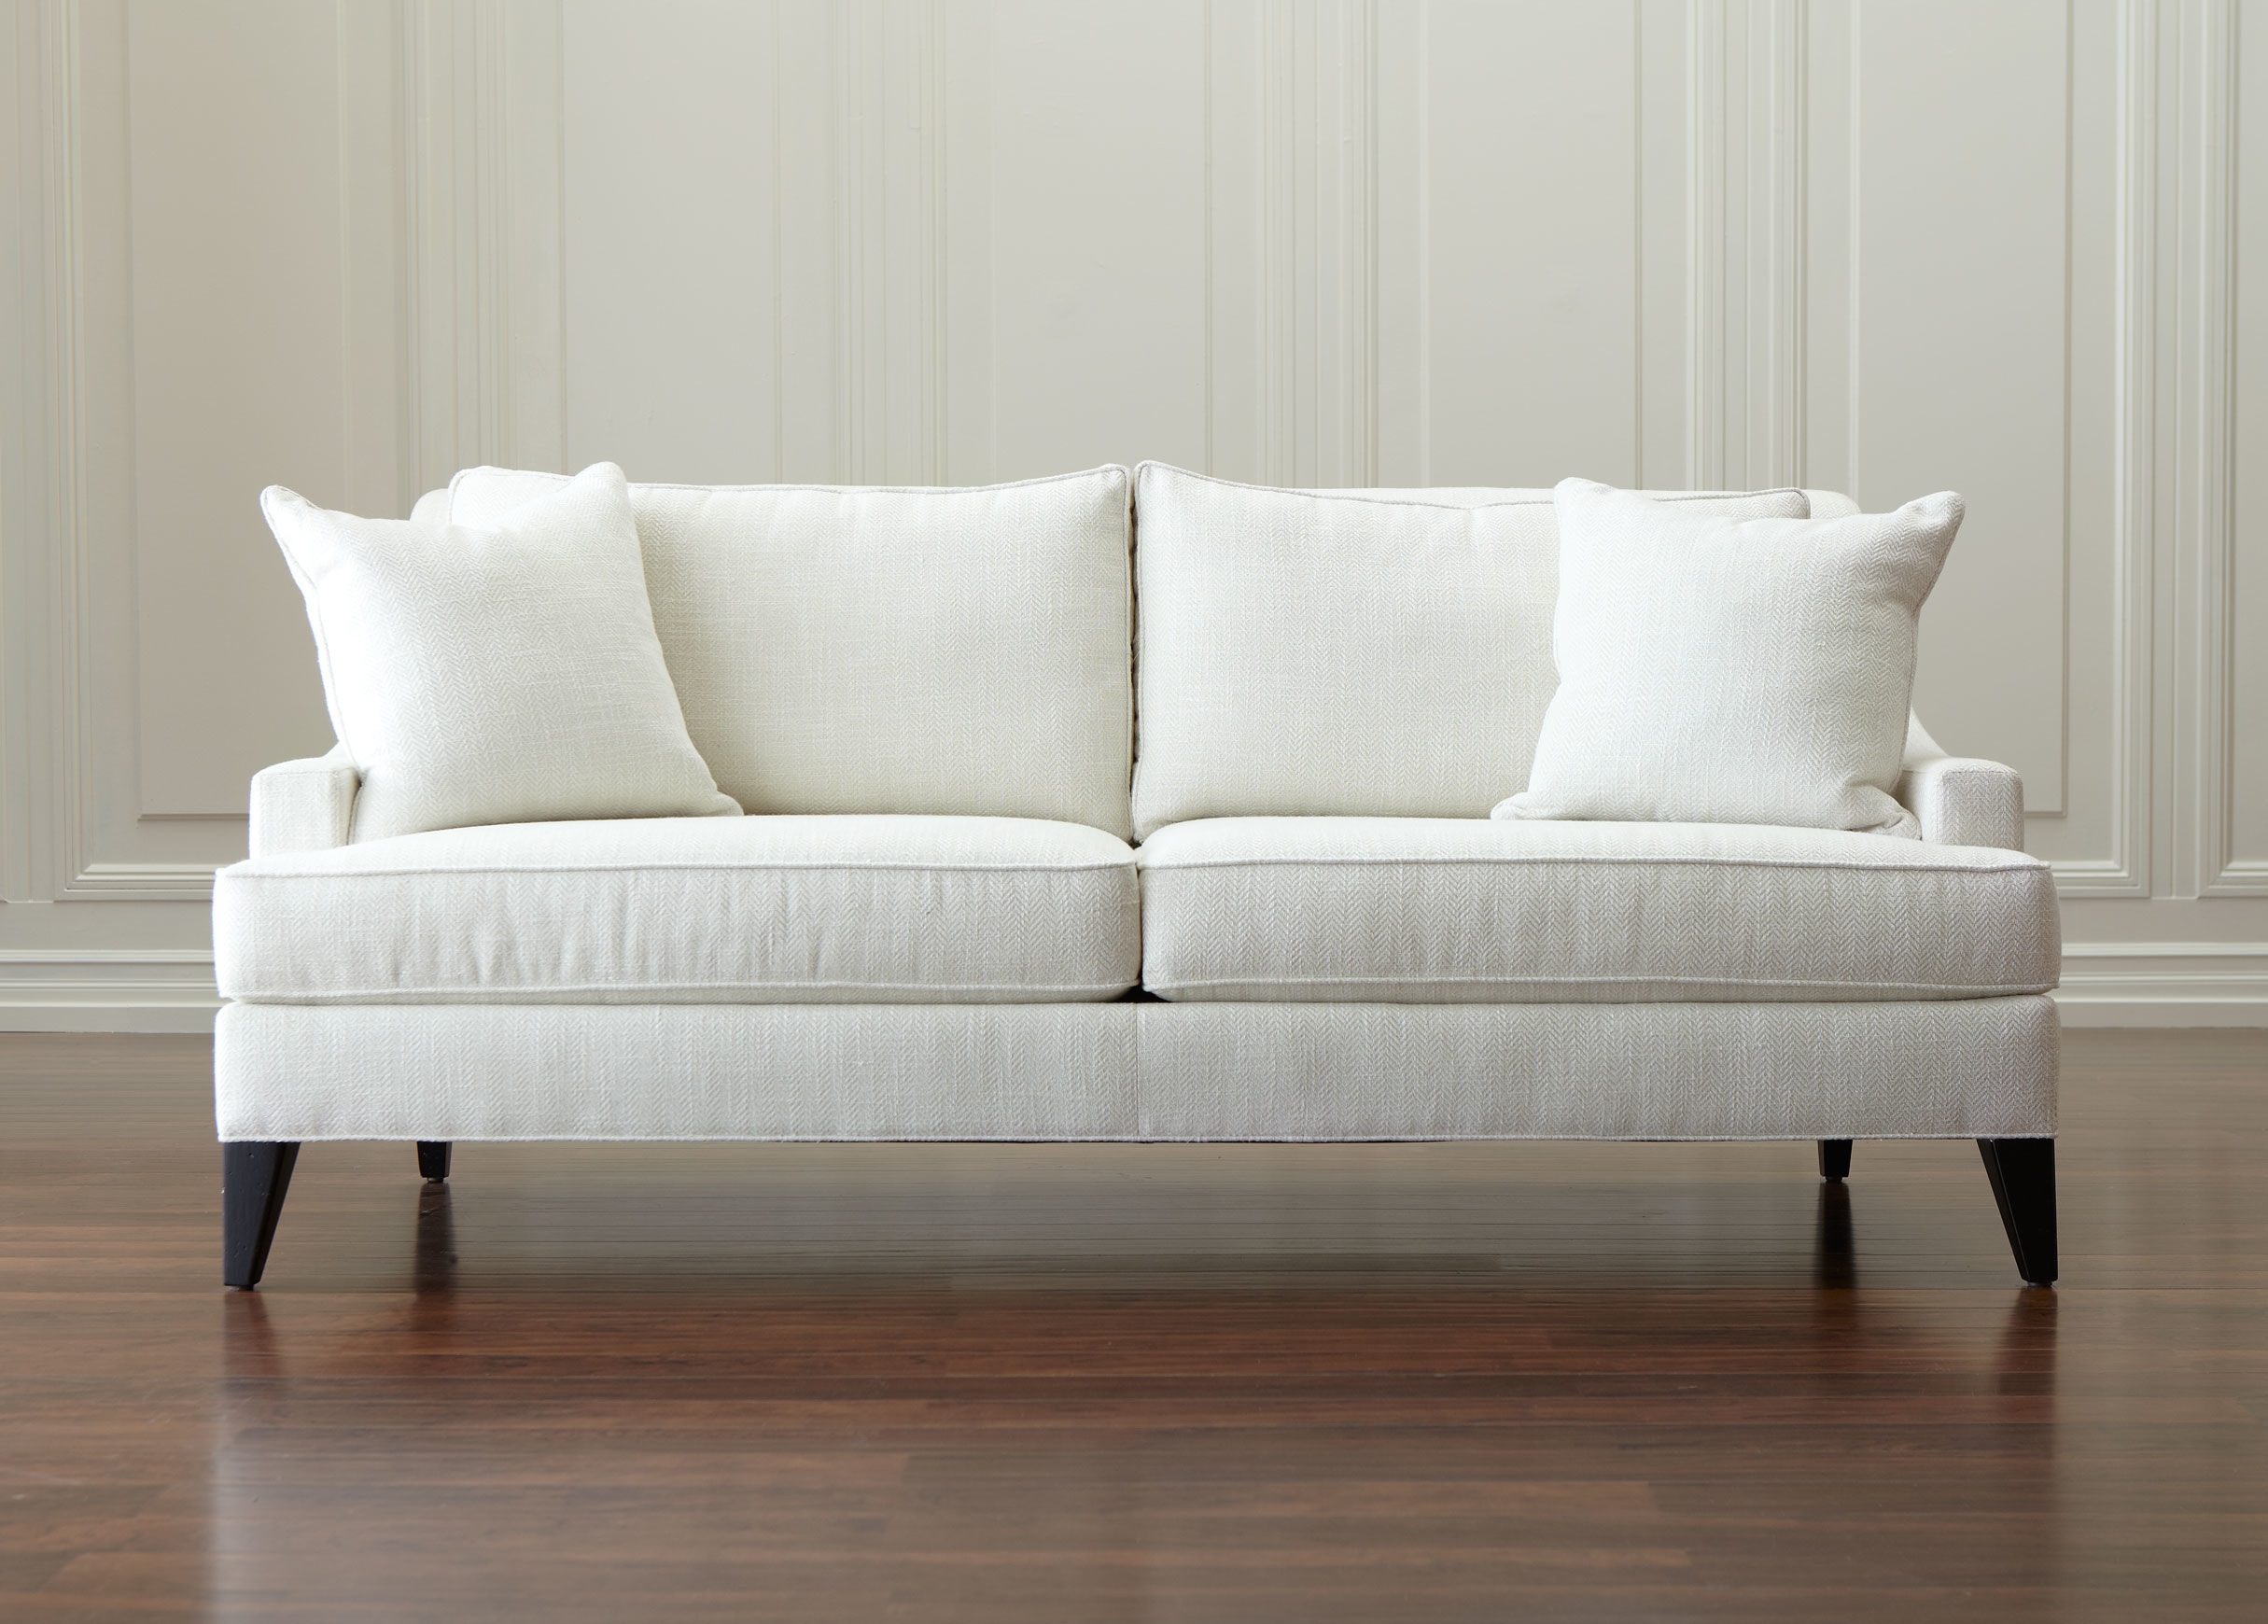 Ethan Allen Sofa Sleepers Perfect Ethan Allen Sleeper Sofa  : Simple White Ethan Allen Sleeper Sofas With Two Pillows And Short Legs from thesofa.droogkast.com size 2430 x 1740 jpeg 435kB